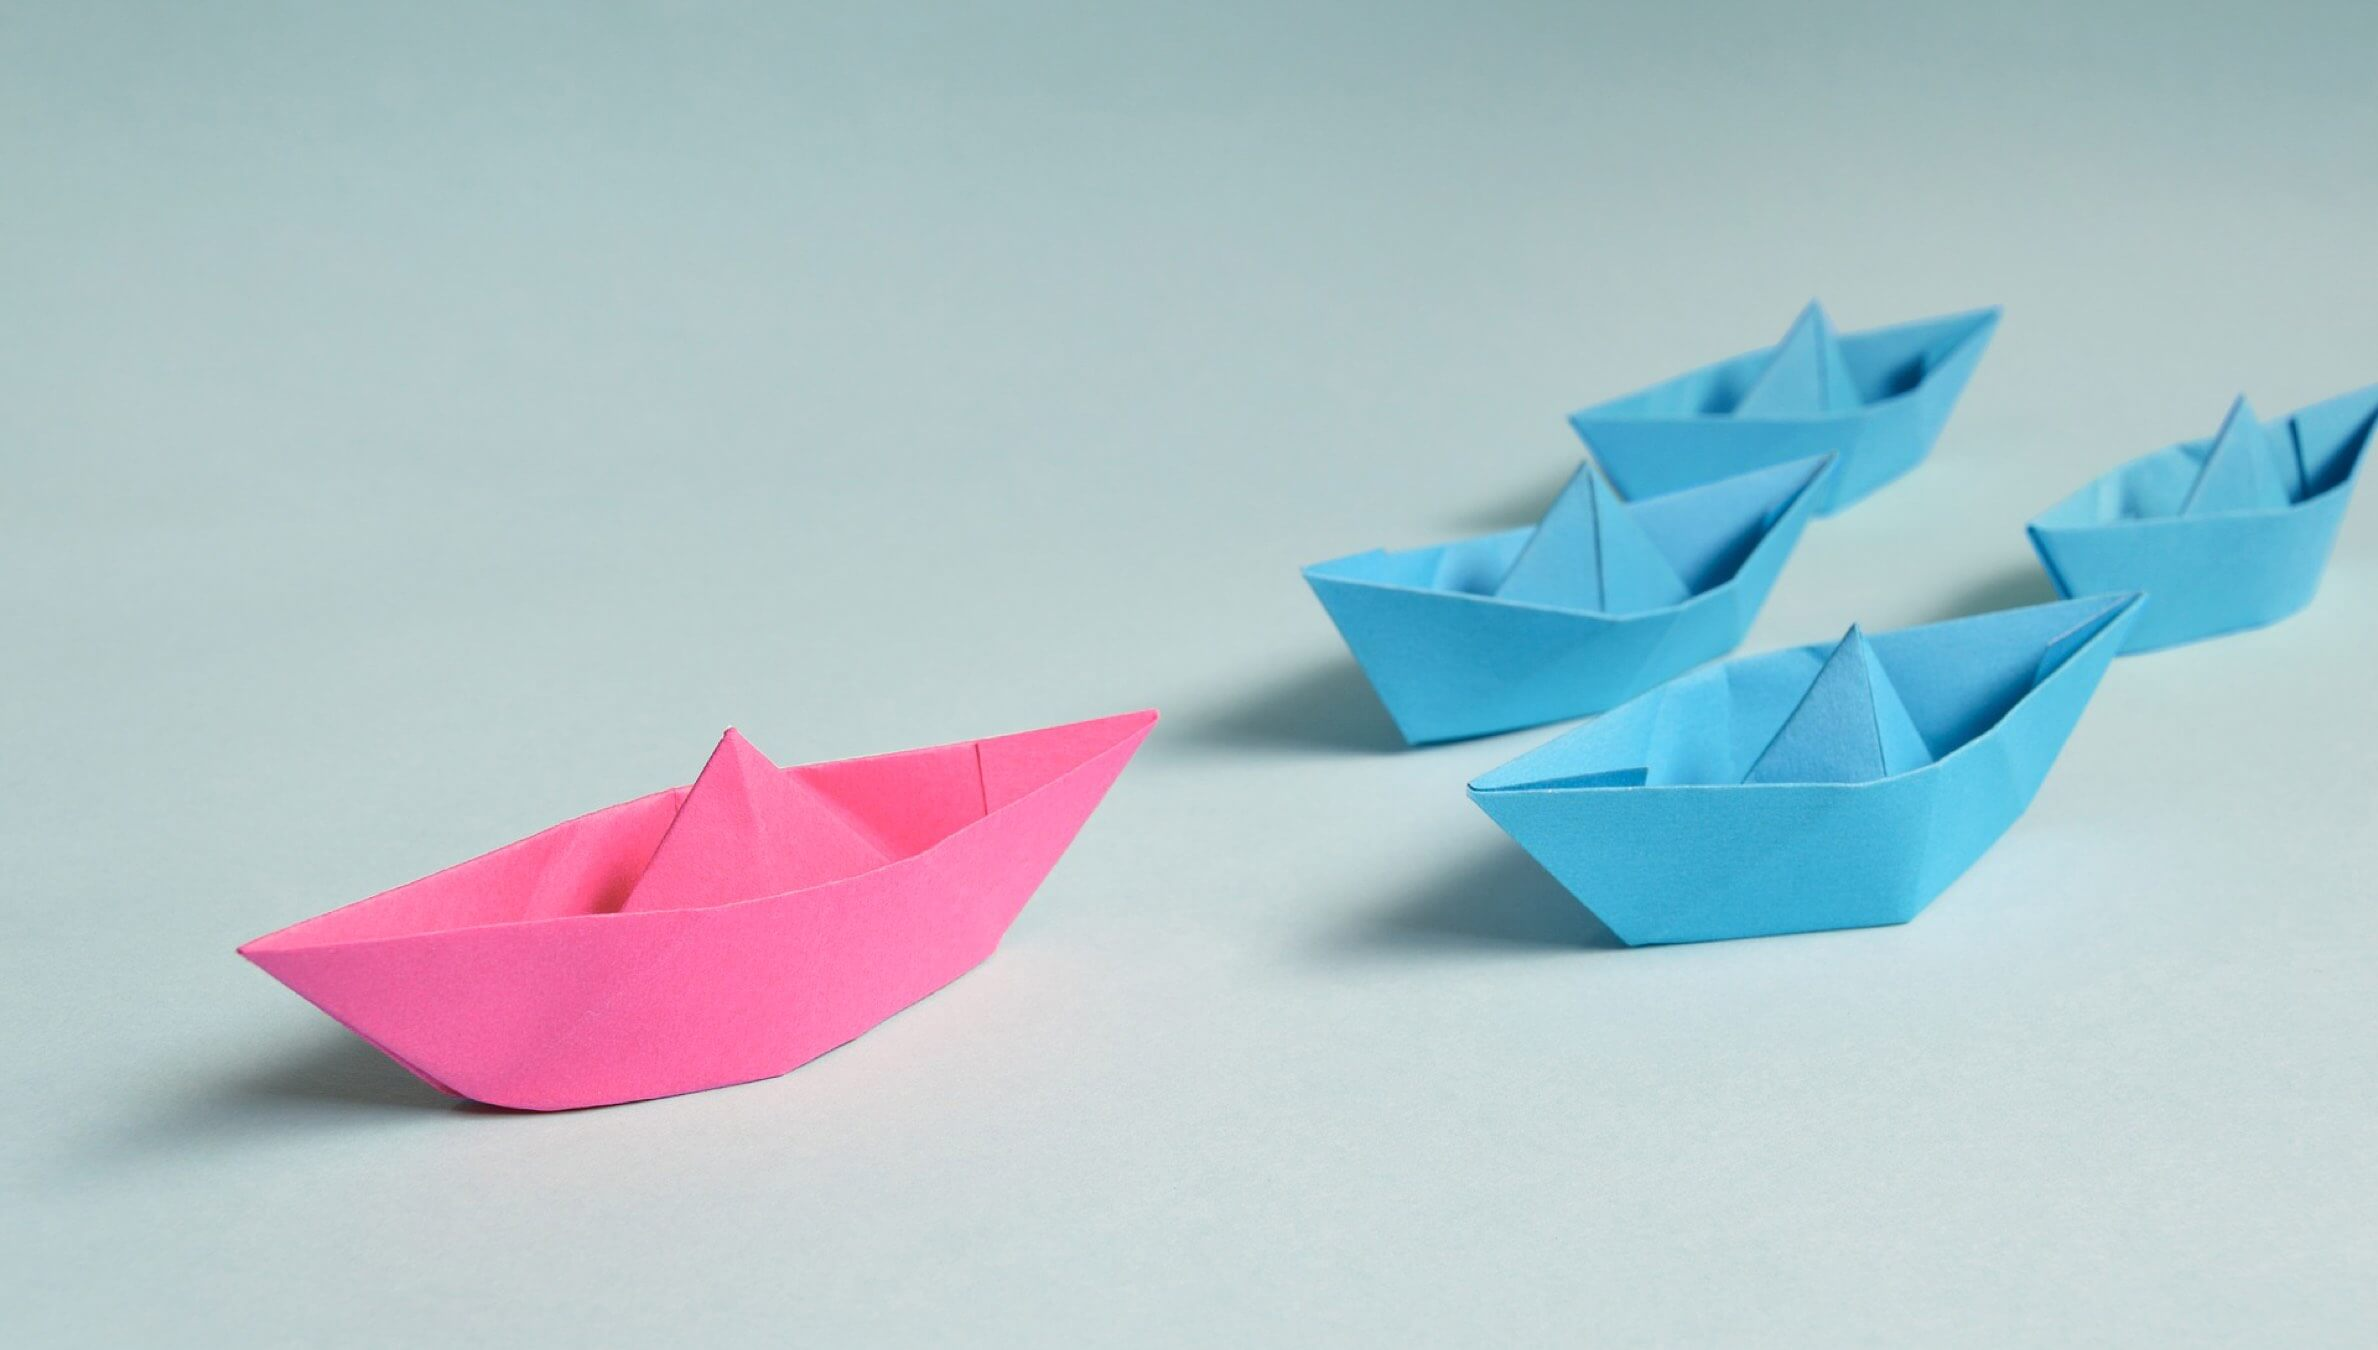 A photo of one pink boat leading four small blue boats.